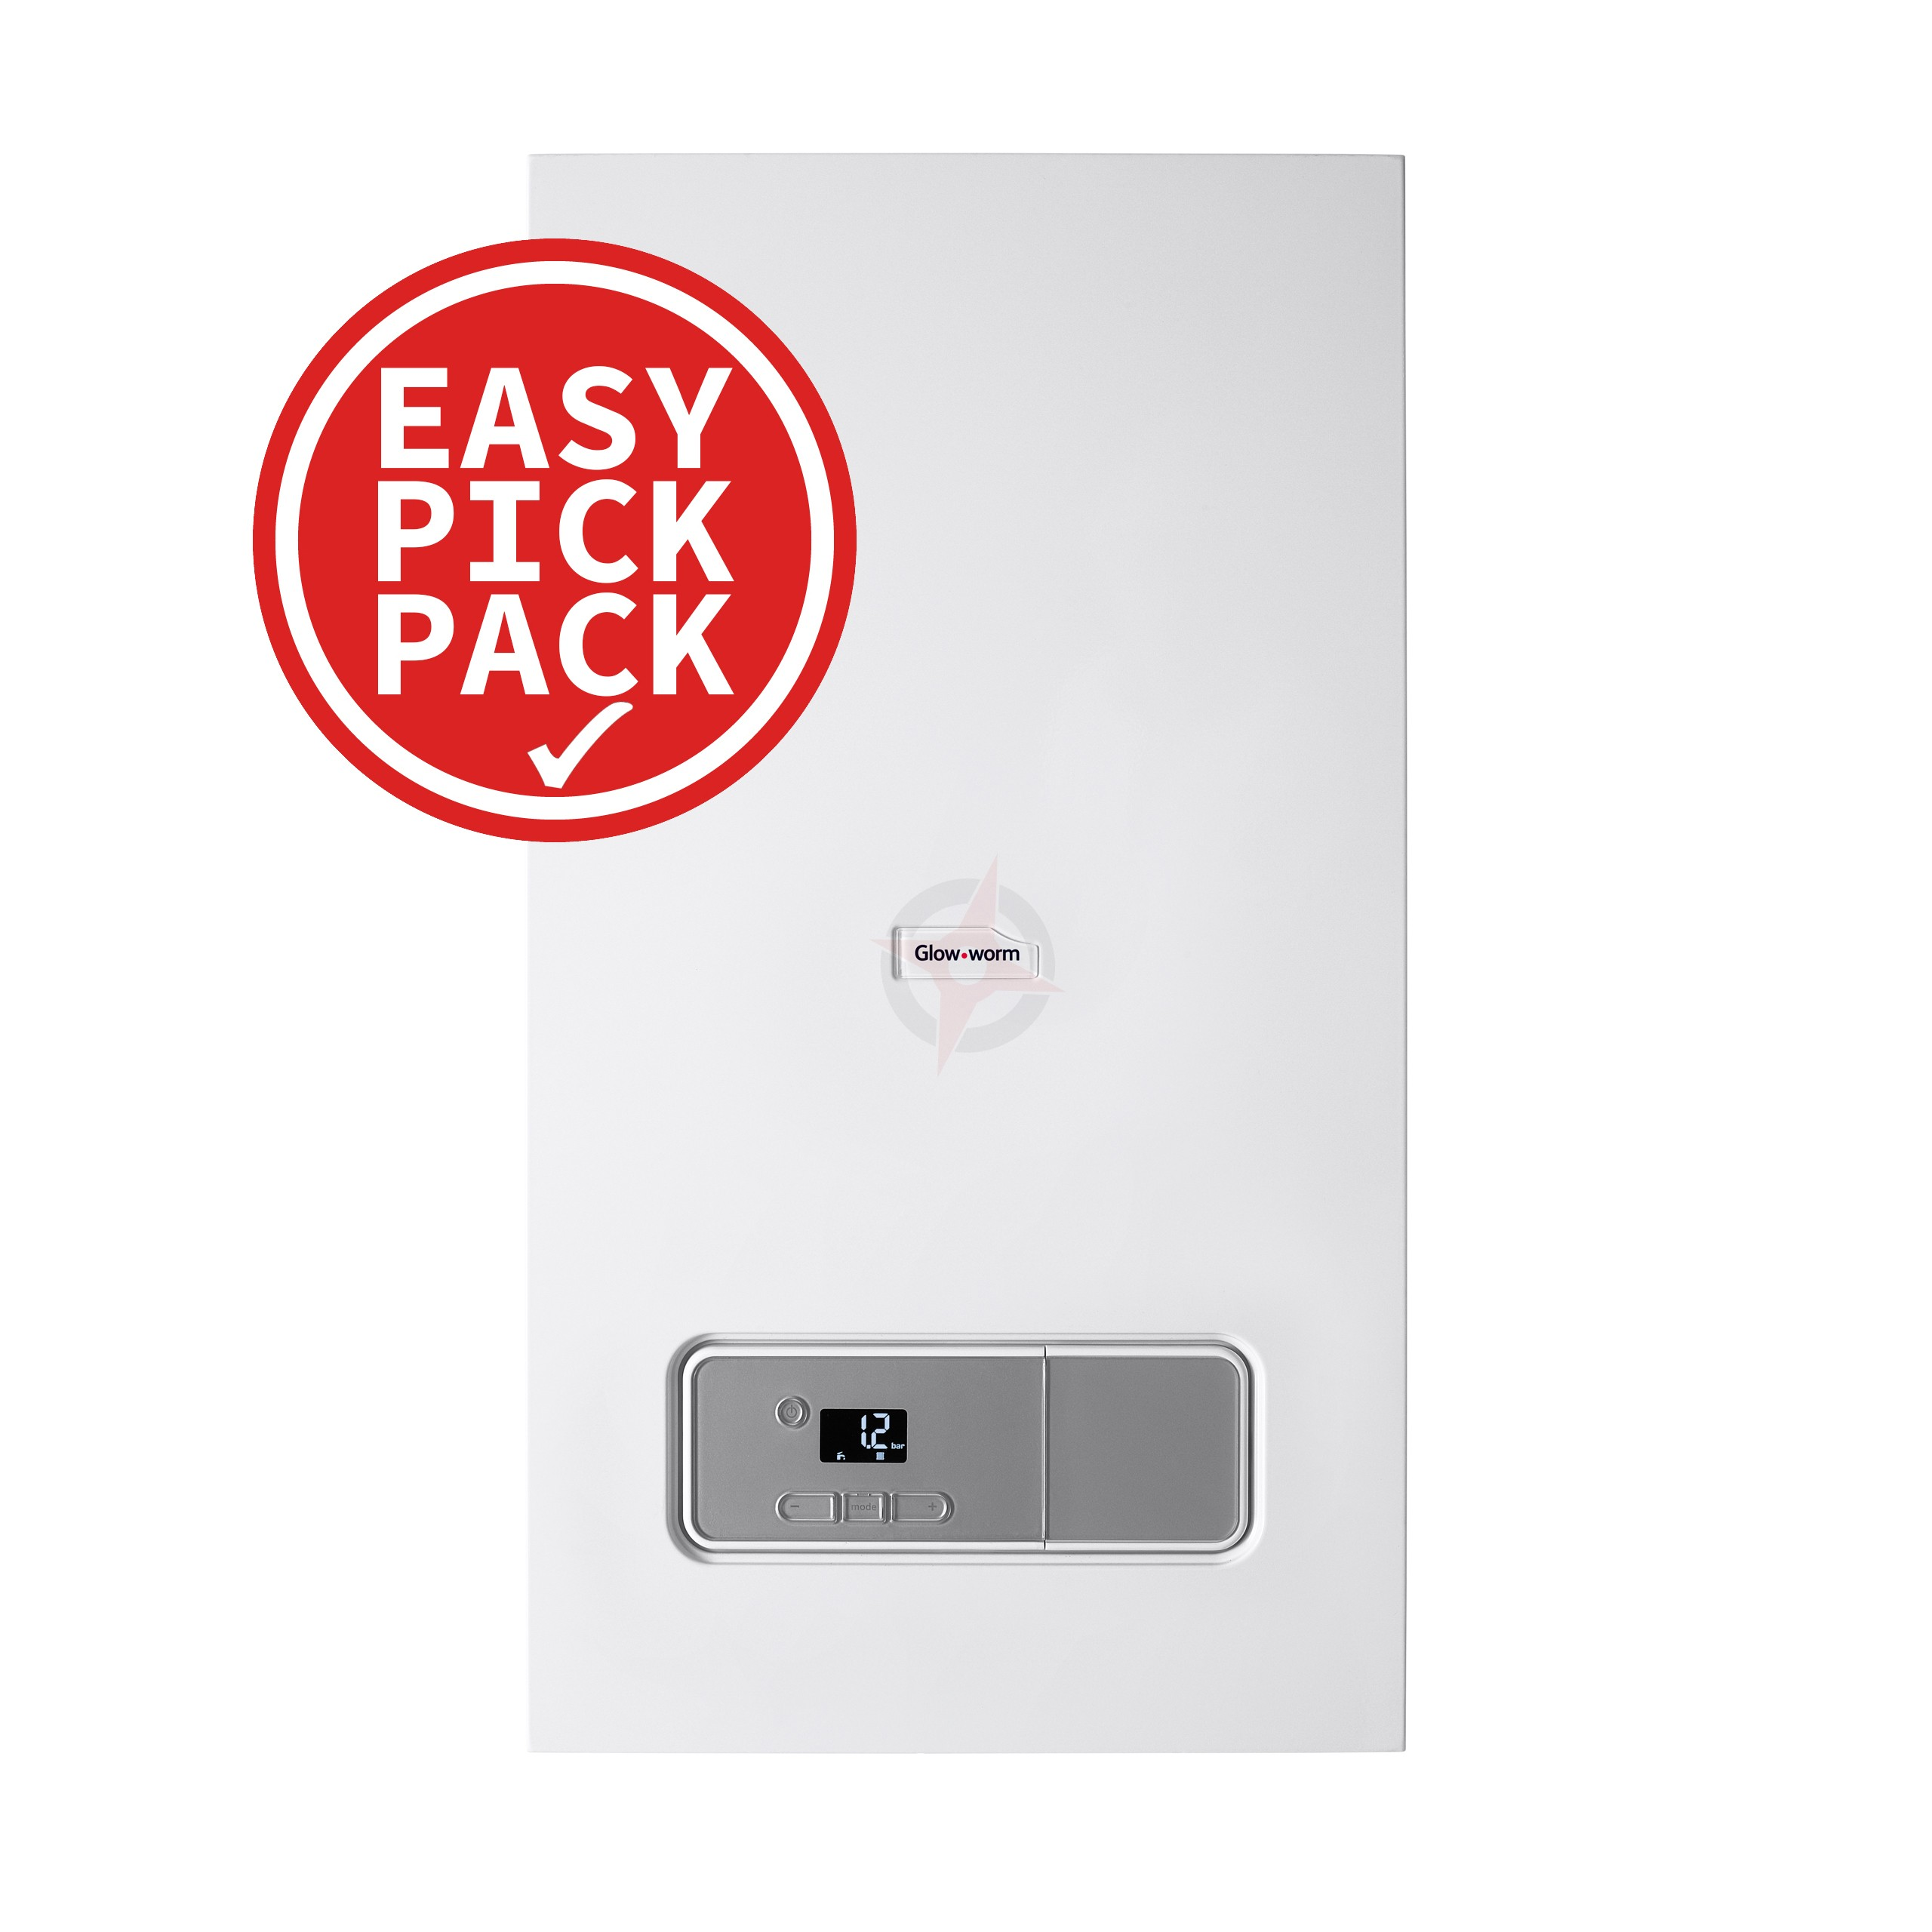 Glow-worm Energy 35C (ErP) Combi Boiler Easy Pick Pack